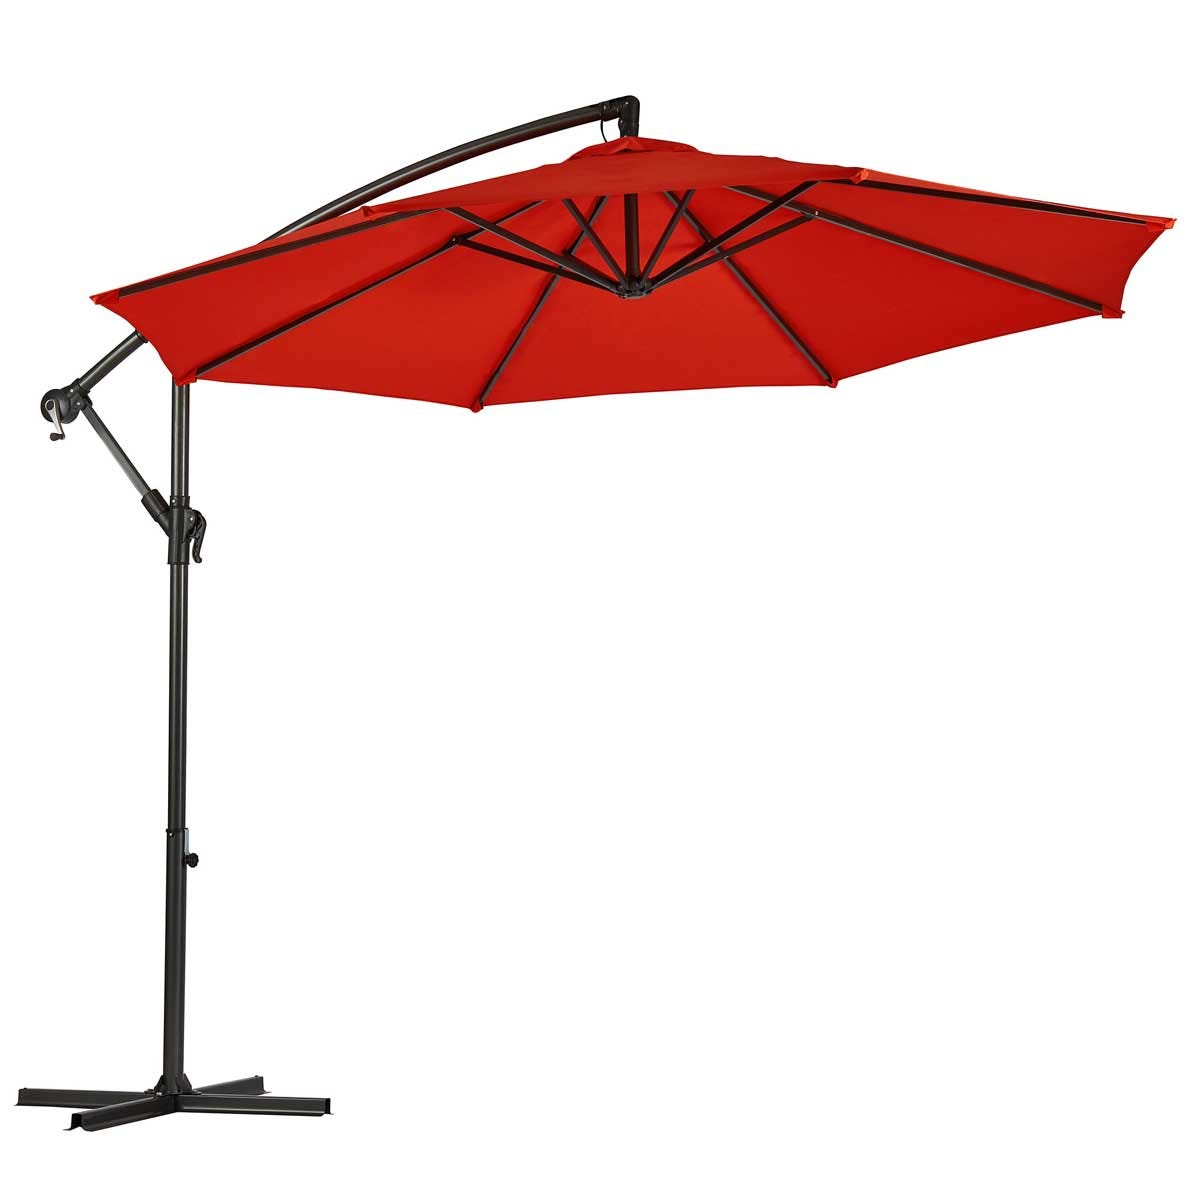 Garden Gear Cantilever Parasol with Cover - Red